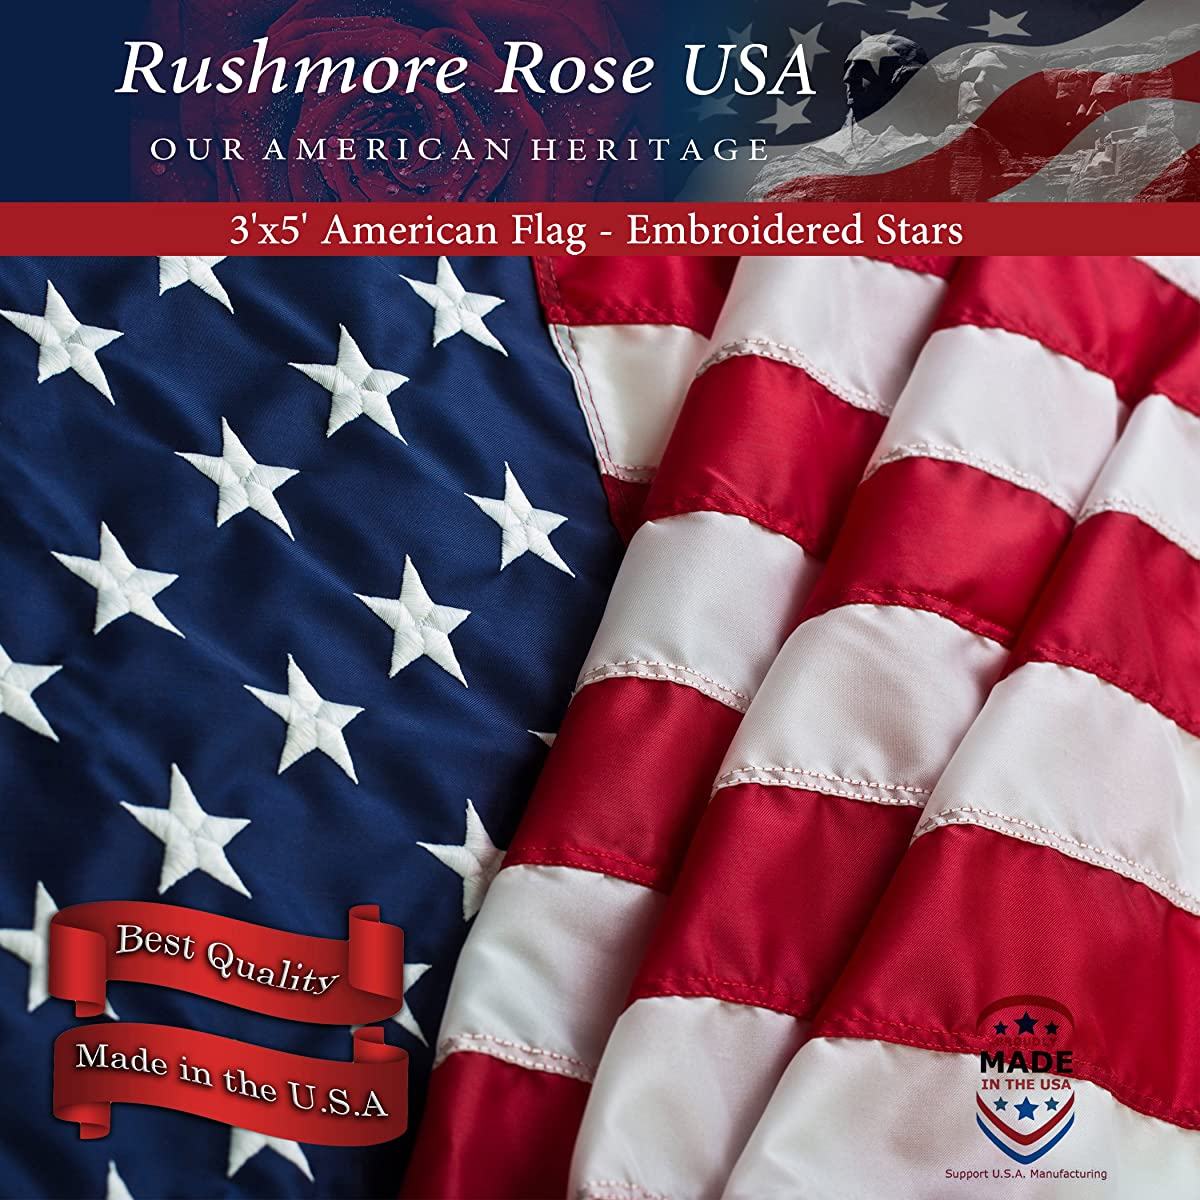 American Flag - Made in USA. Premium 3x5 US Flags. Embroidered Stars and Stripes - American Flags Made in America